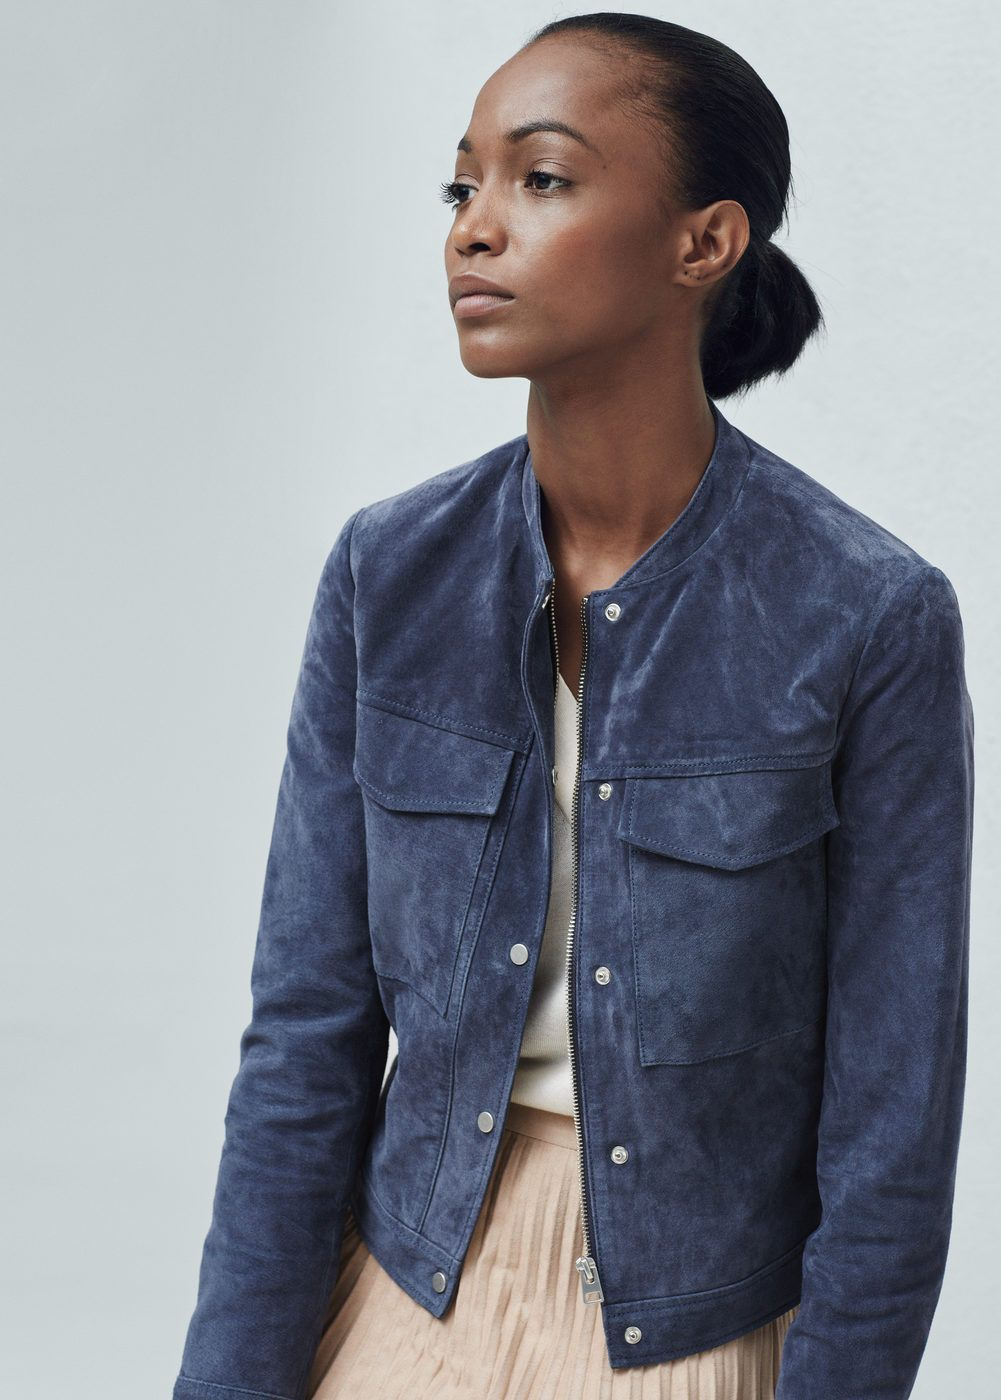 b107be66 flap-pocket suede jacket - Women | Jackets of all trades | Suede ...